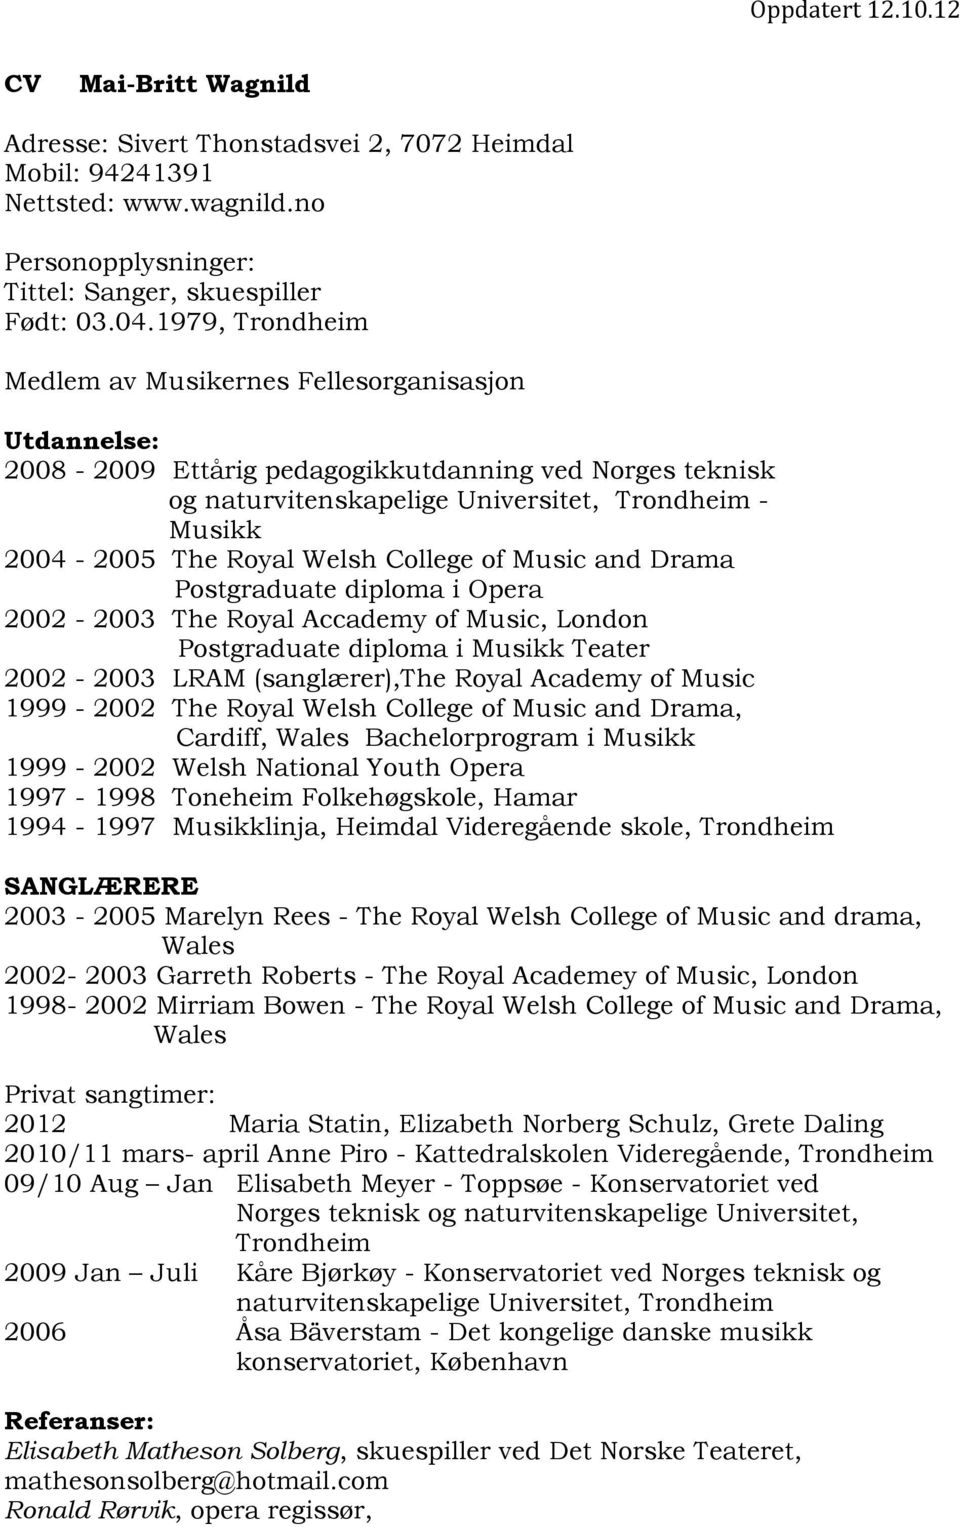 Welsh College of Music and Drama Postgraduate diploma i Opera 2002-2003 The Royal Accademy of Music, London Postgraduate diploma i Musikk Teater 2002-2003 LRAM (sanglærer),the Royal Academy of Music